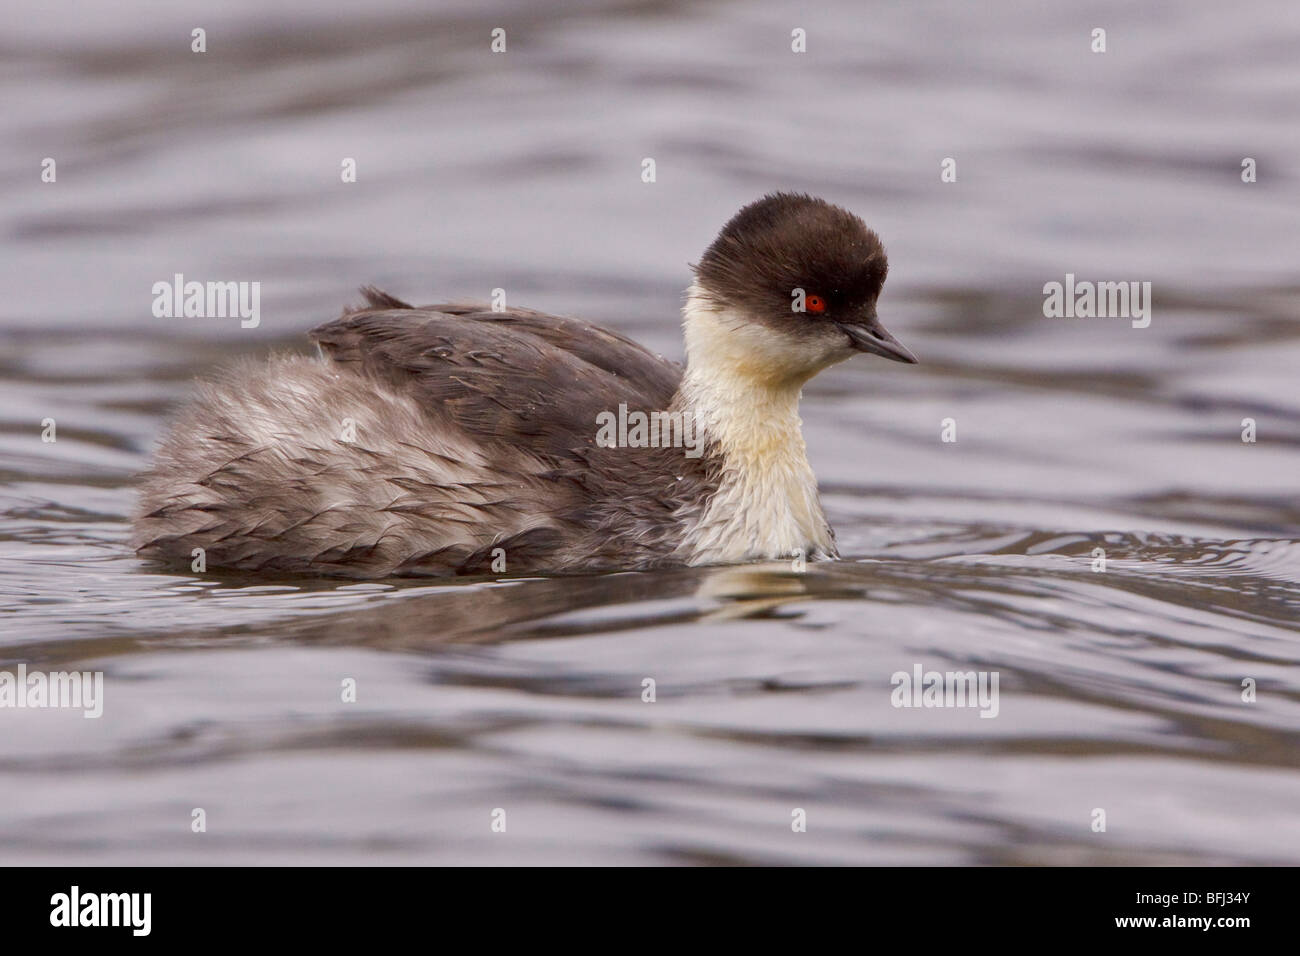 Silvery Grebe (Podiceps occipitalis) swimming in a lake in the highlands of Ecuador. - Stock Image